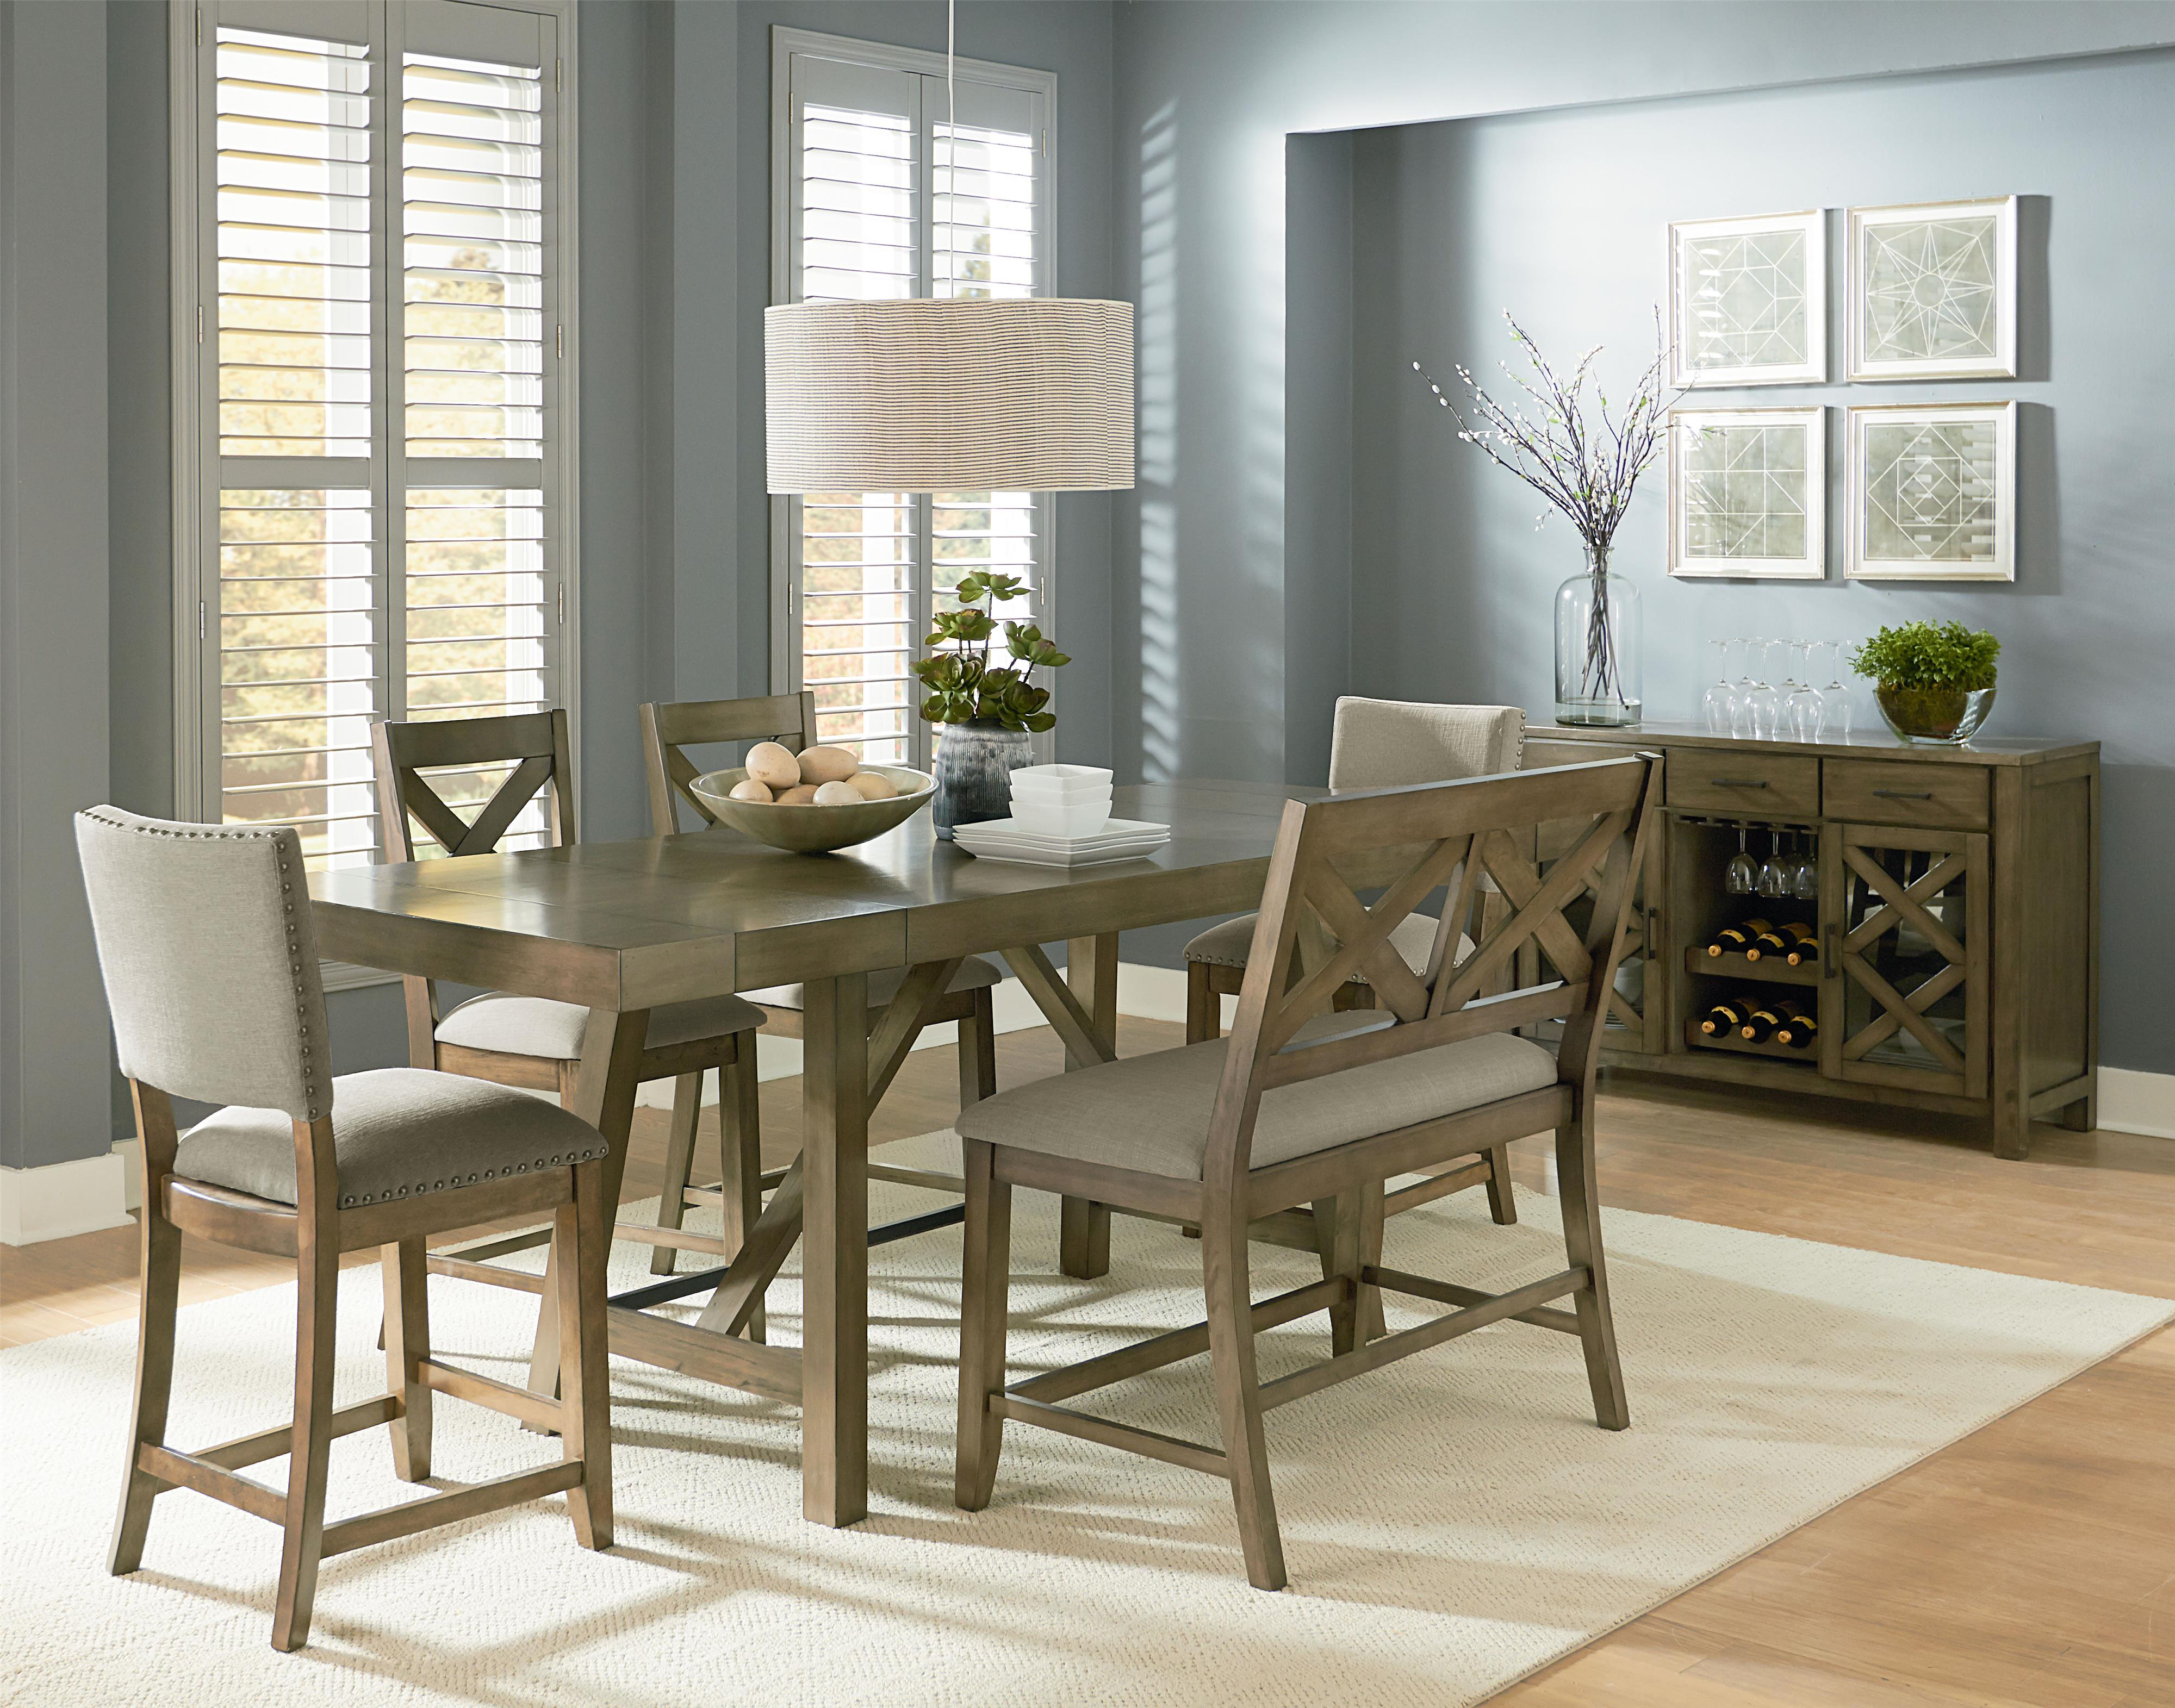 Omaha grey casual dining room group by standard furniture for Casual dining room